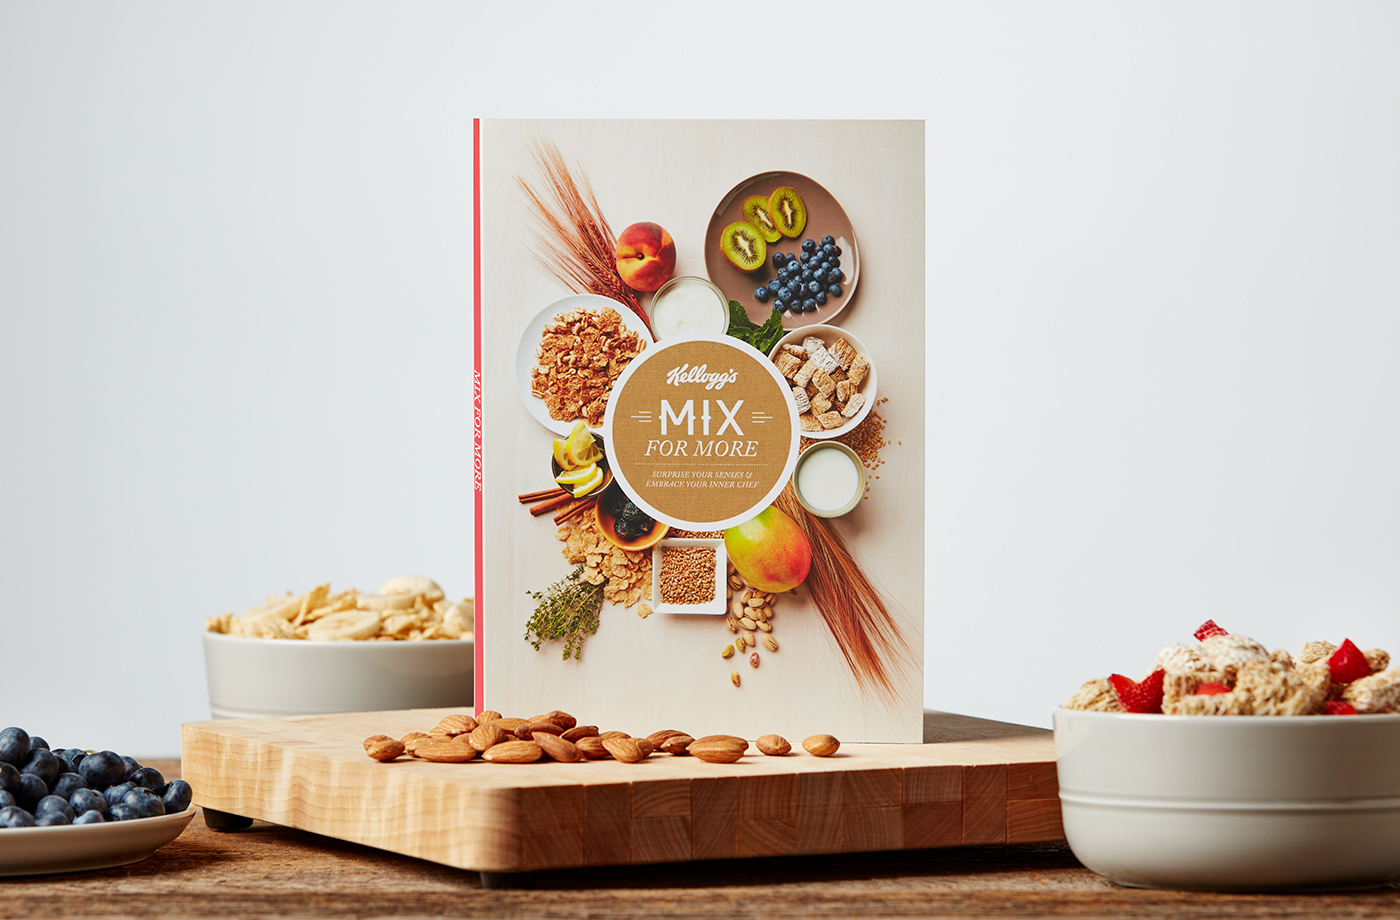 The cover of the Mix For More booklet surrounded by fruits, nuts, and cereal.